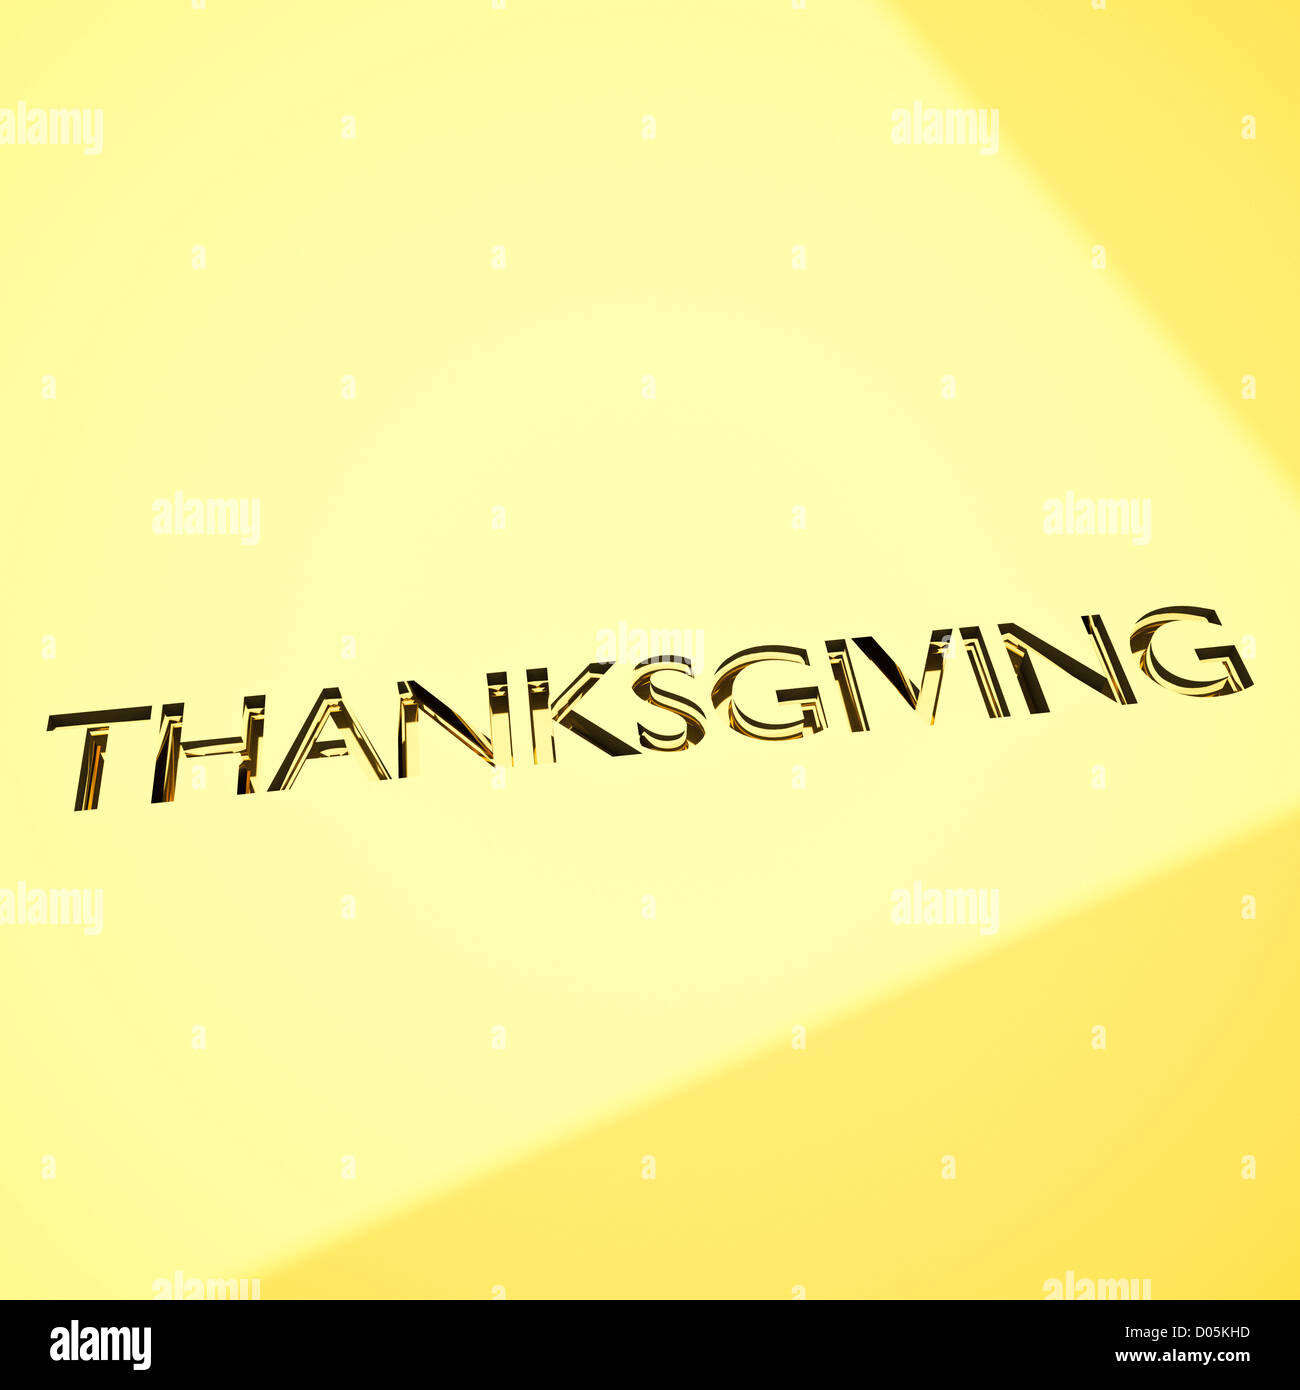 Thanksgiving Message In Engraving For Celebrations Concepts Or